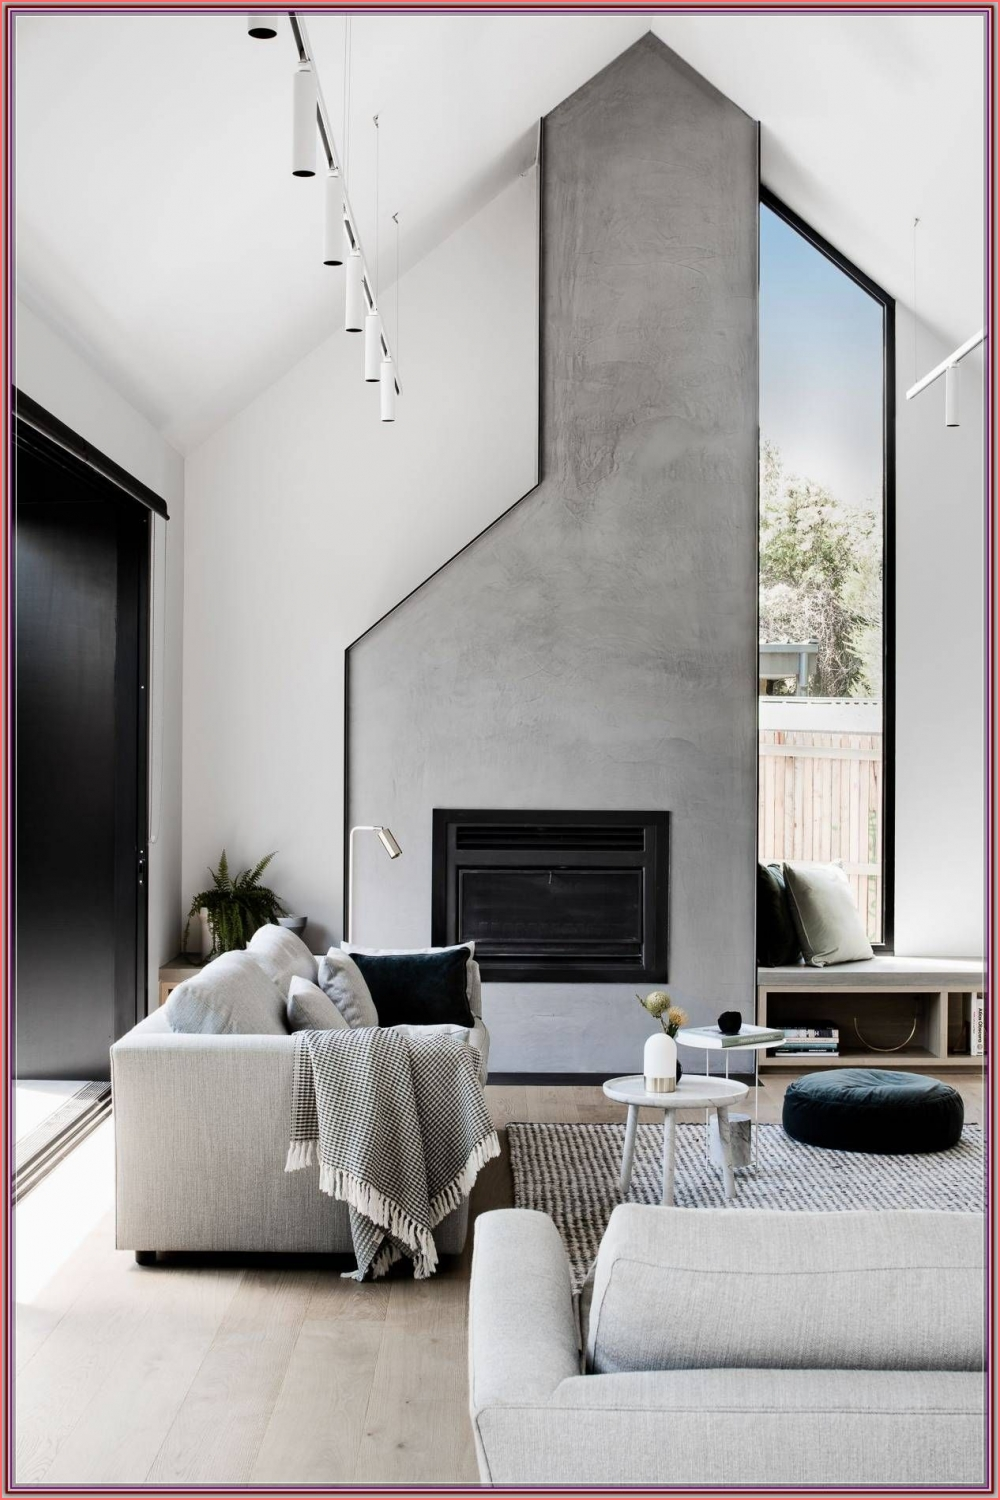 Monochromatic Interior Design You Must Not Miss It in 2020 on modern monochromatic living room on modern monochromatic living room post on 2020-11-21 16:24:24